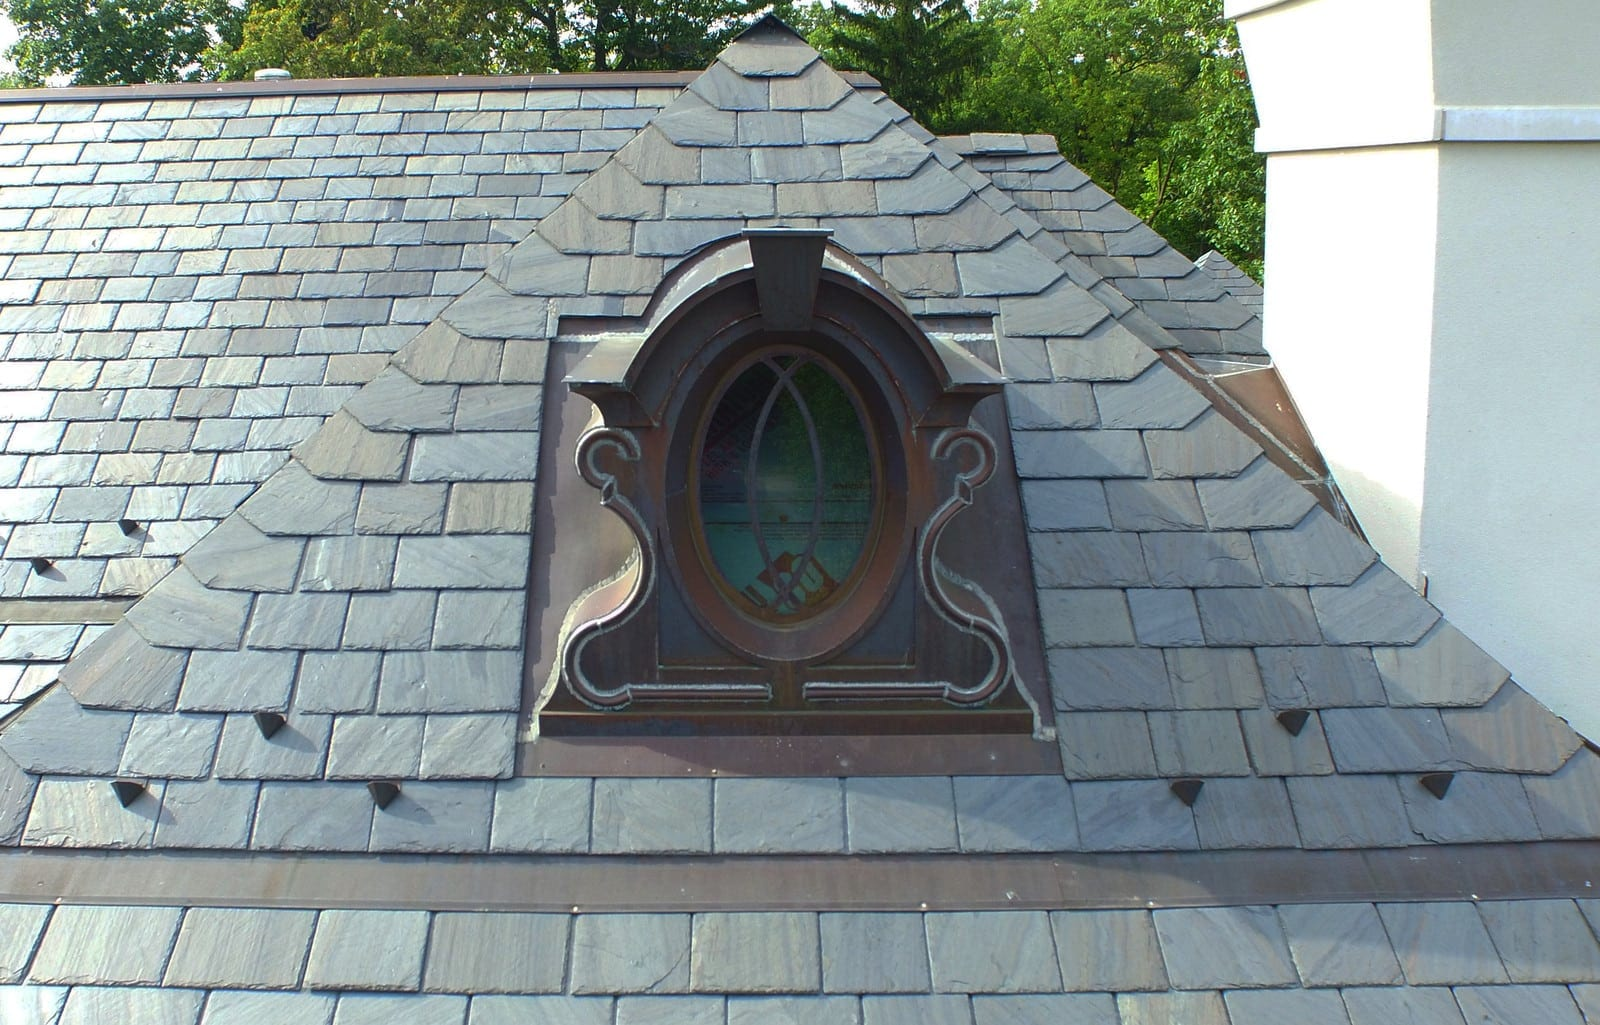 For a timeless classic, slate is a great option